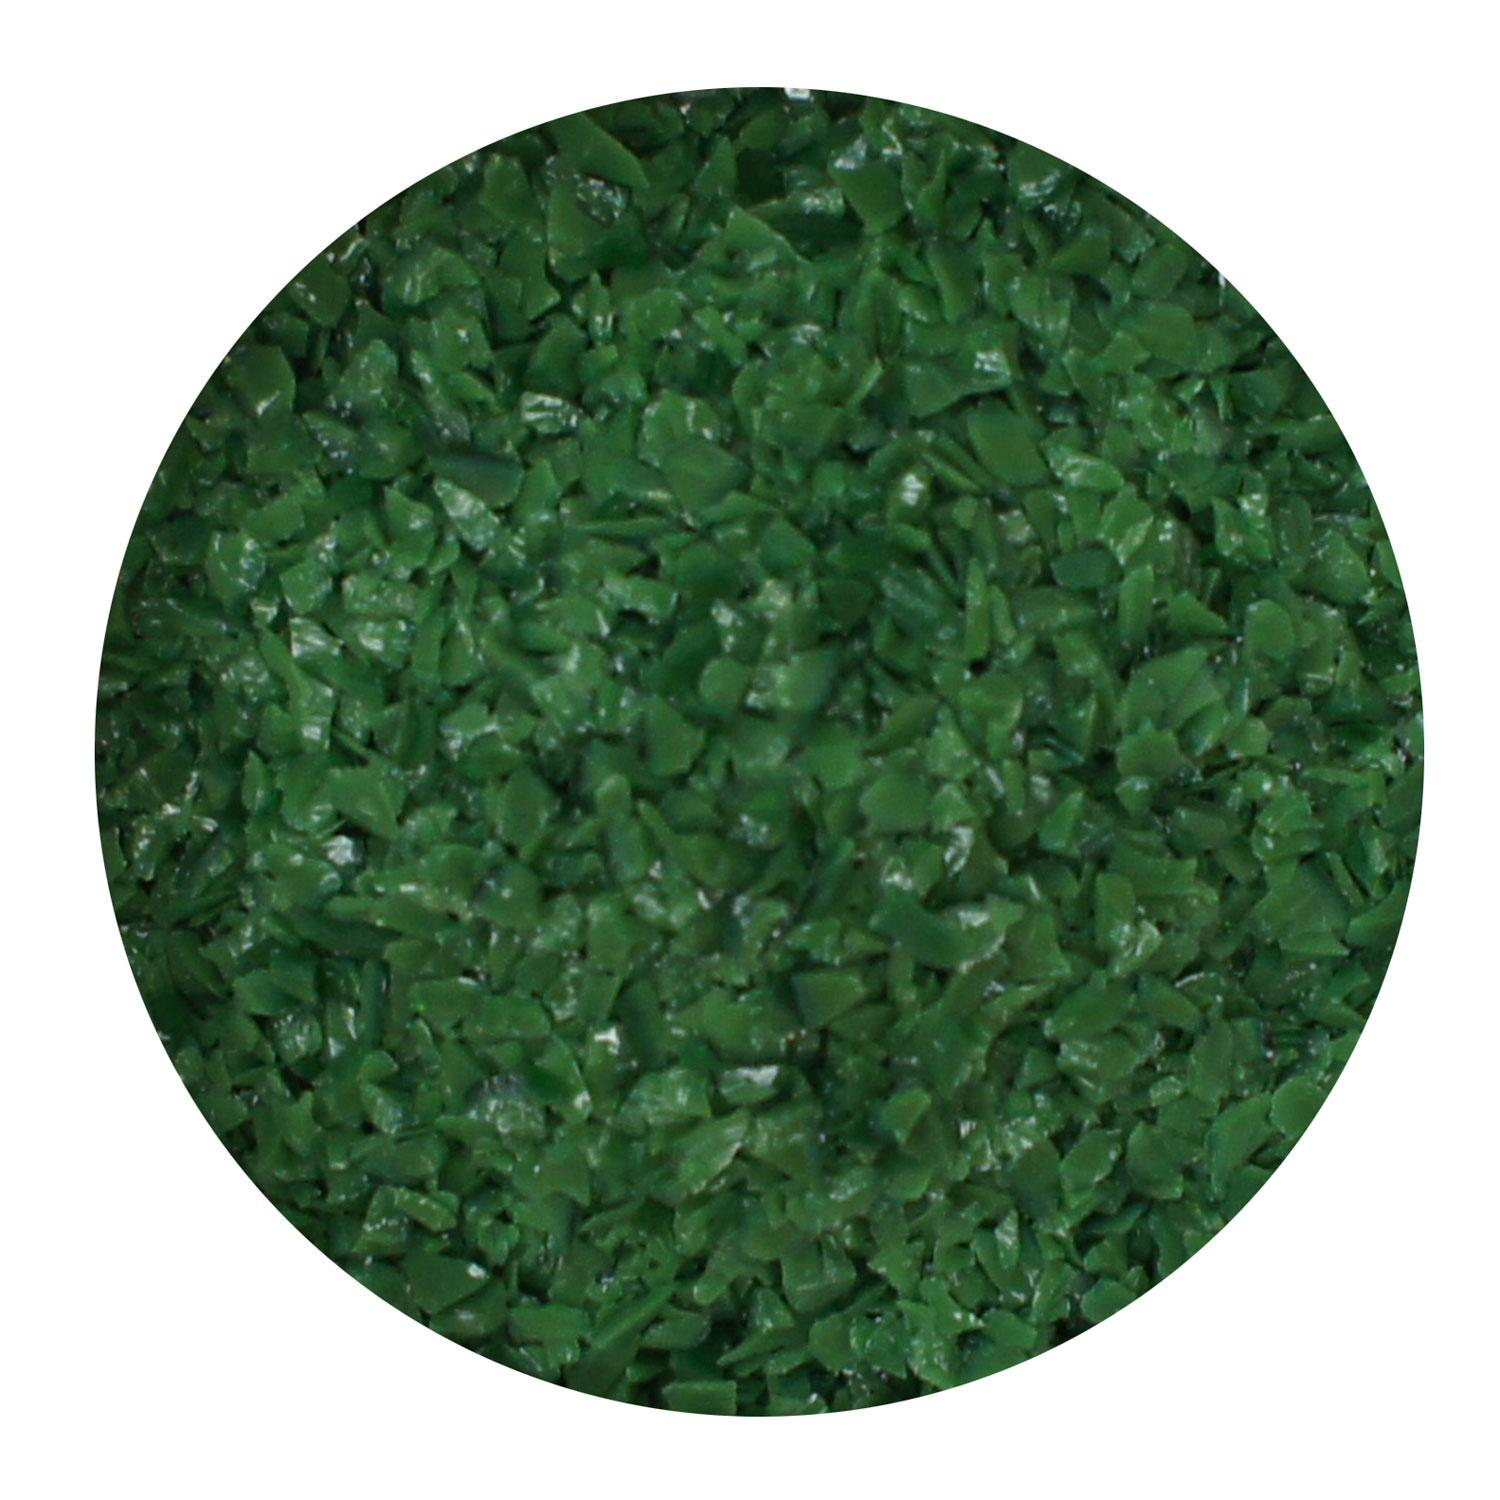 8.5 Oz Dark Green Opal Medium Frit - 96 COE